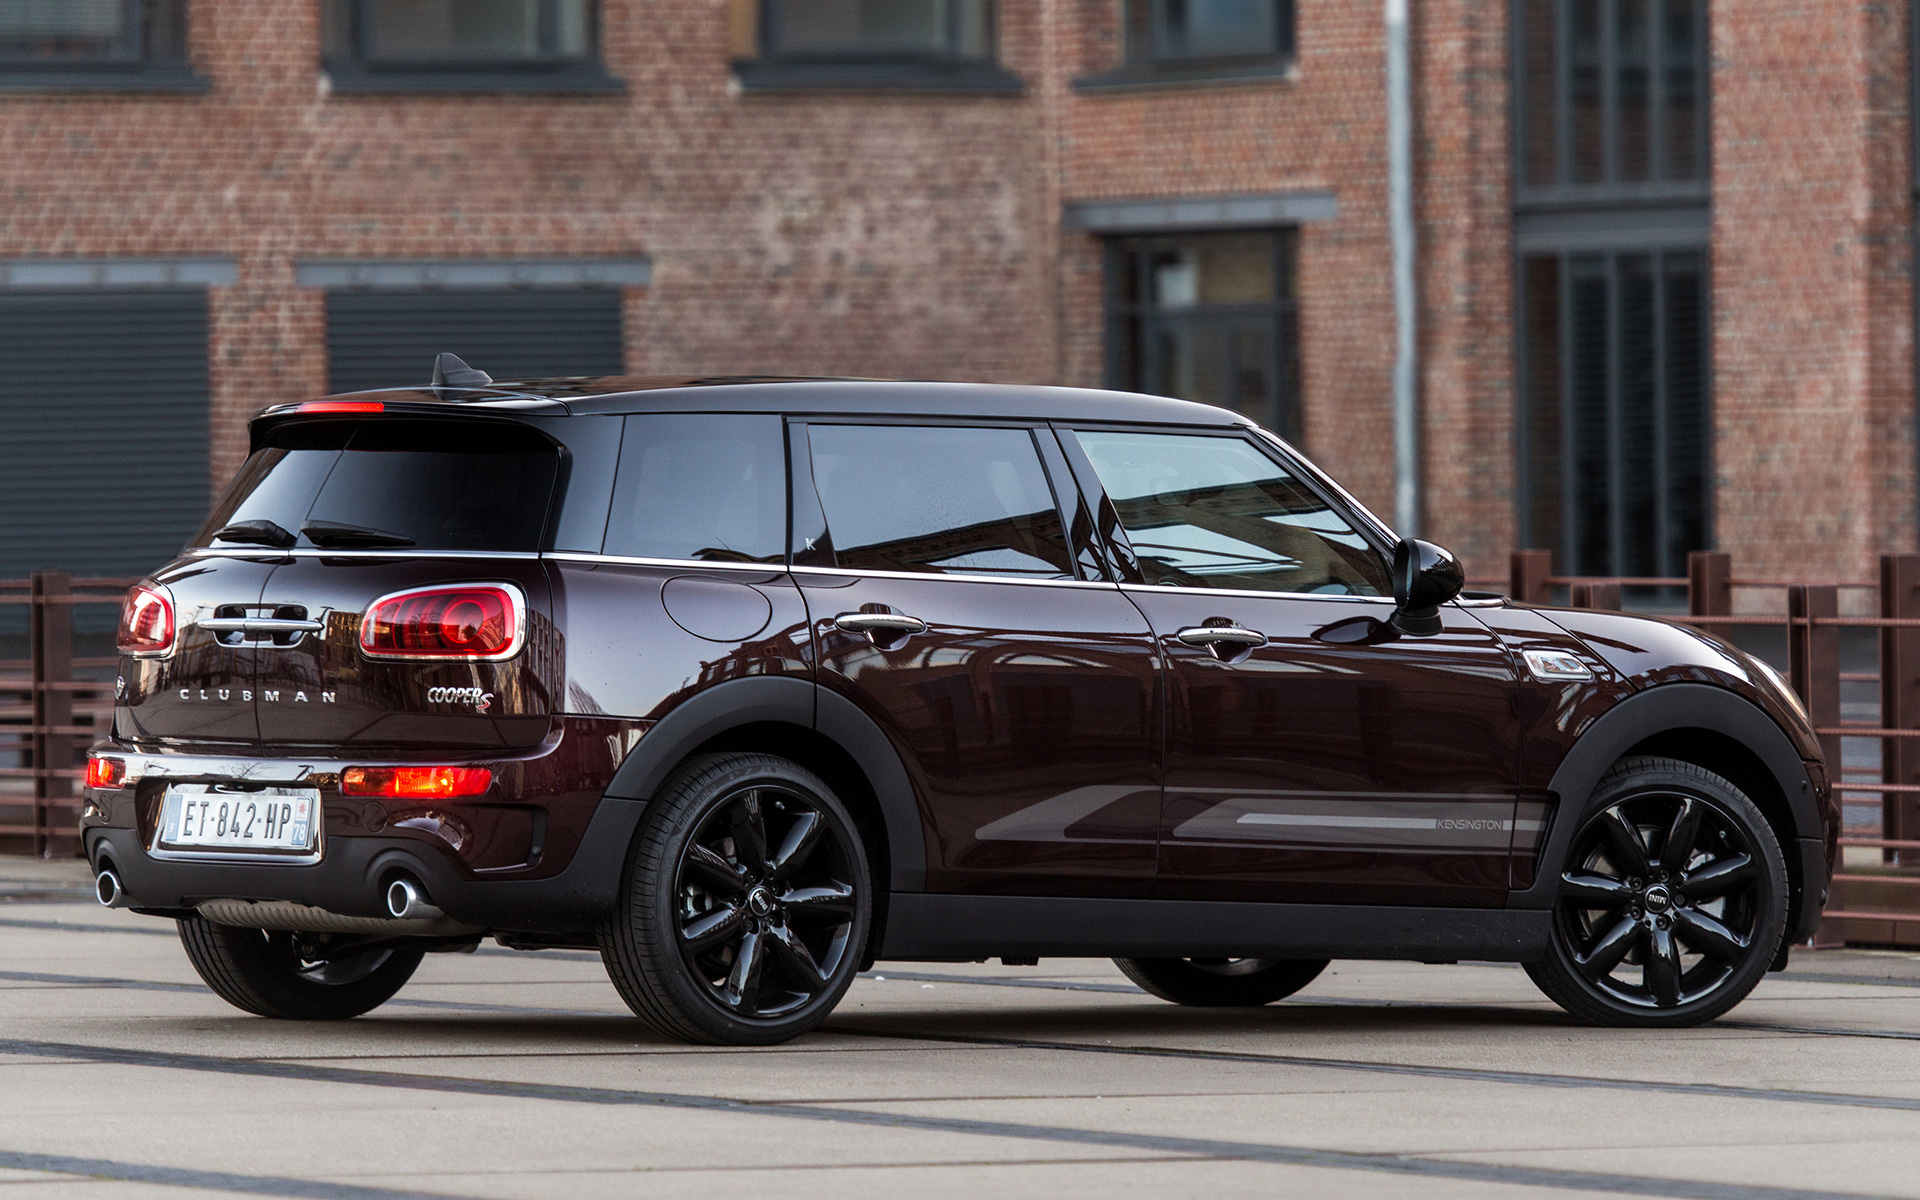 2018 Mini Cooper S Clubman Kensington Wallpapers And Hd